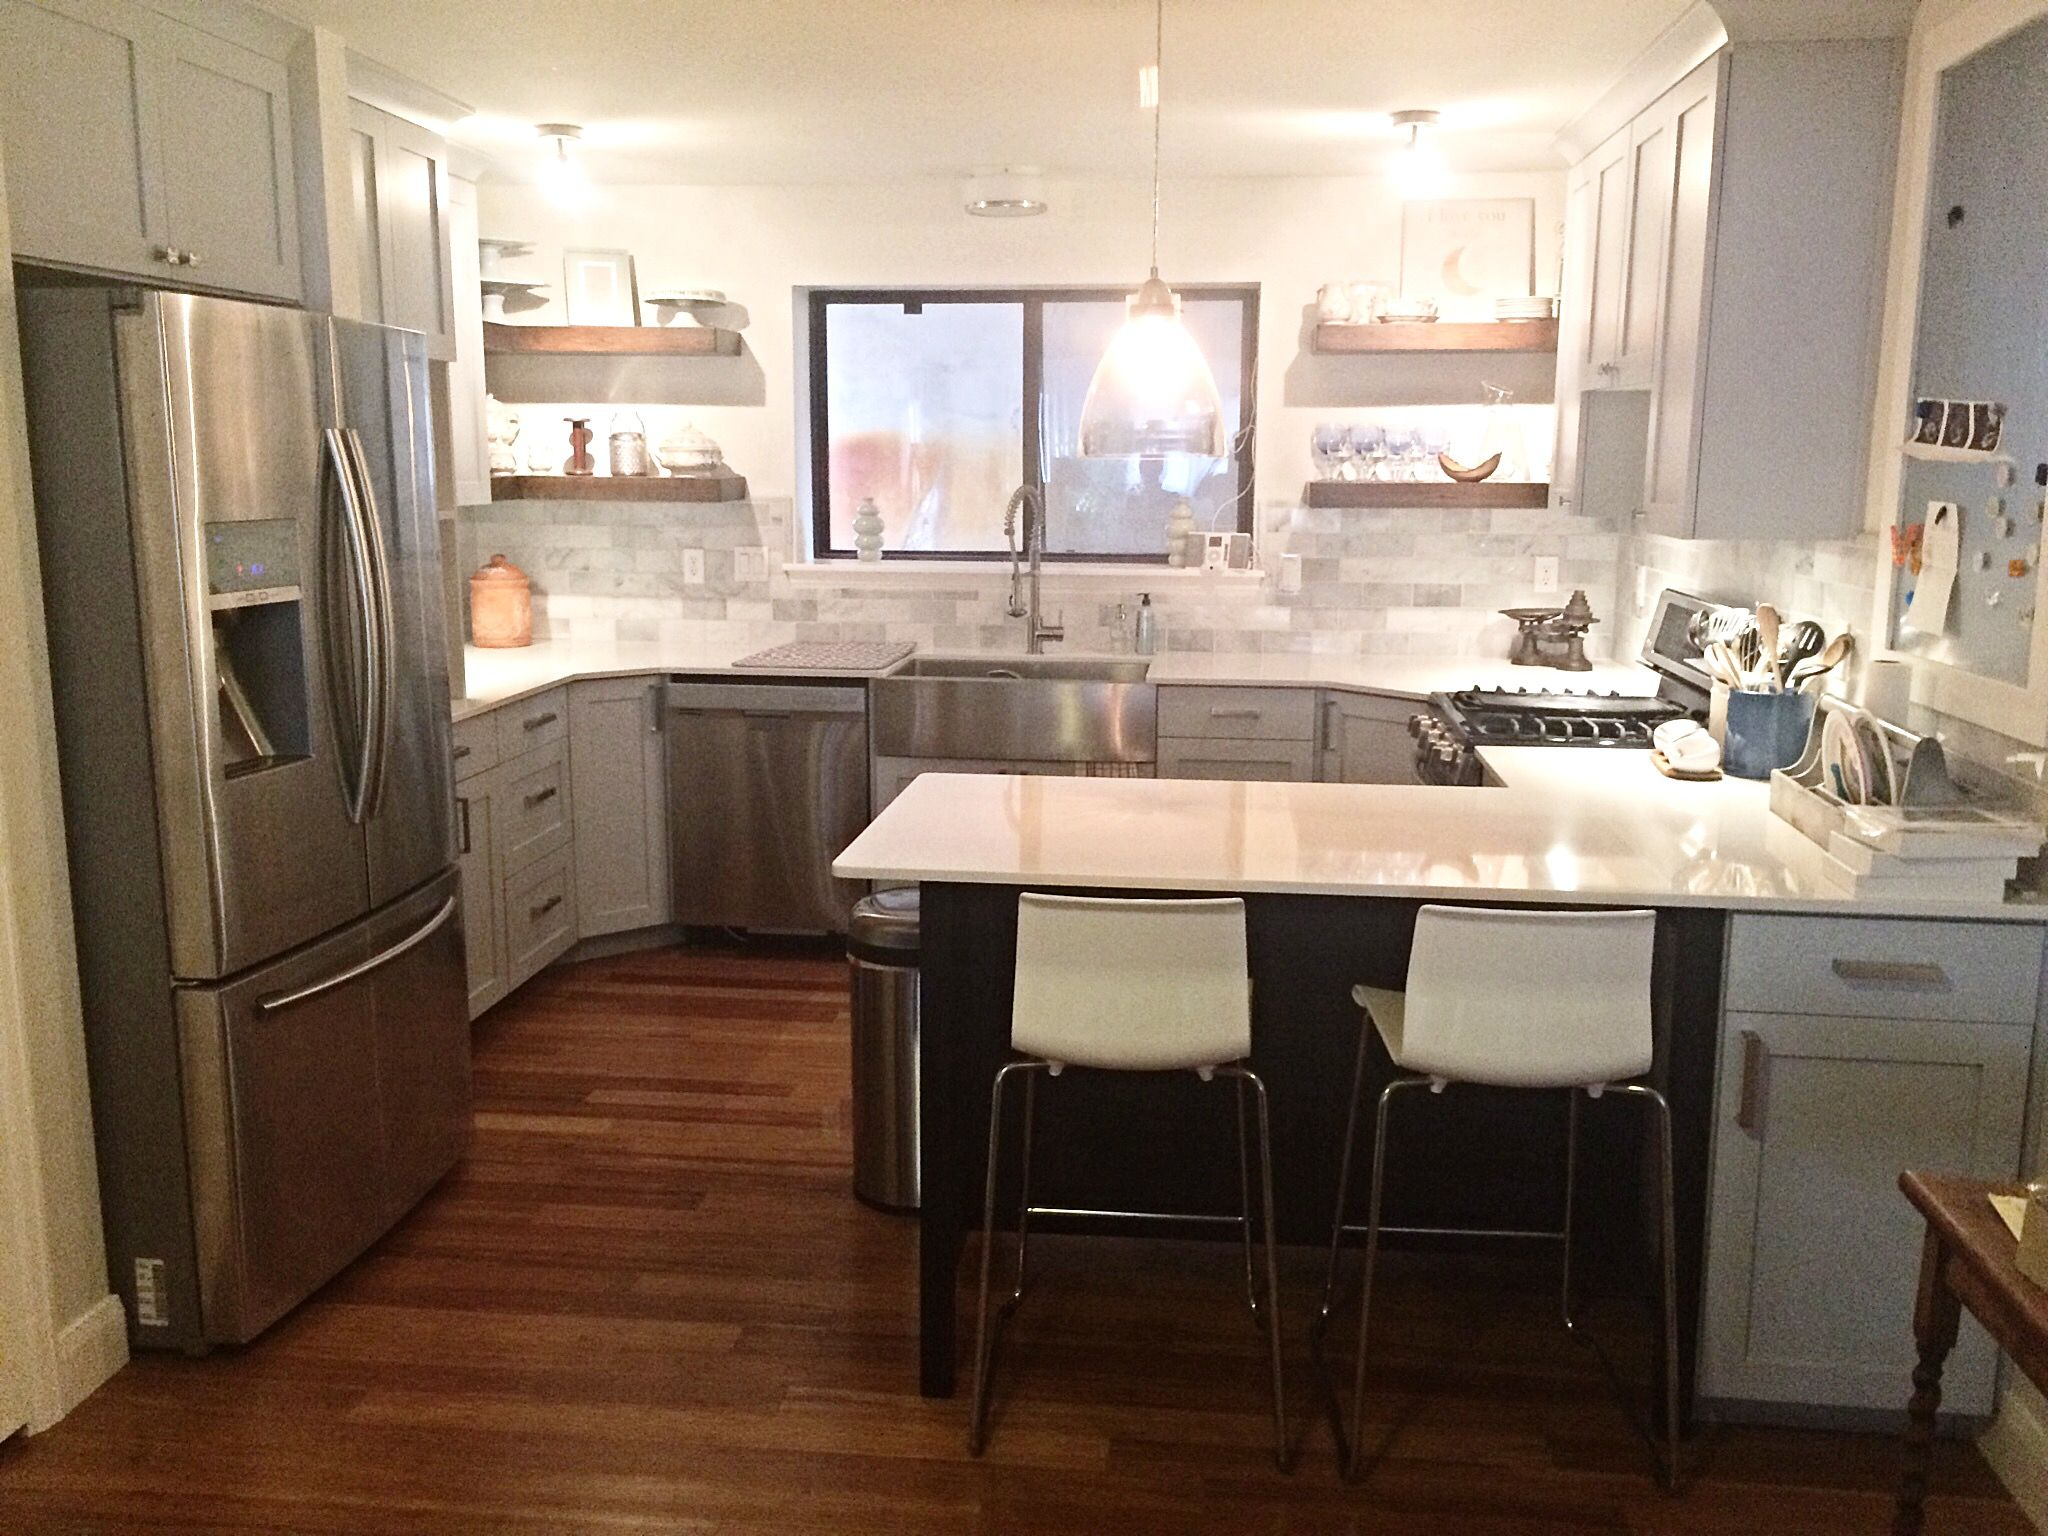 Custom Shaker Style Cabinets Accented By Chipped Ice Quartz Countertops,  Bamboo Hardwood Flooring And Dark